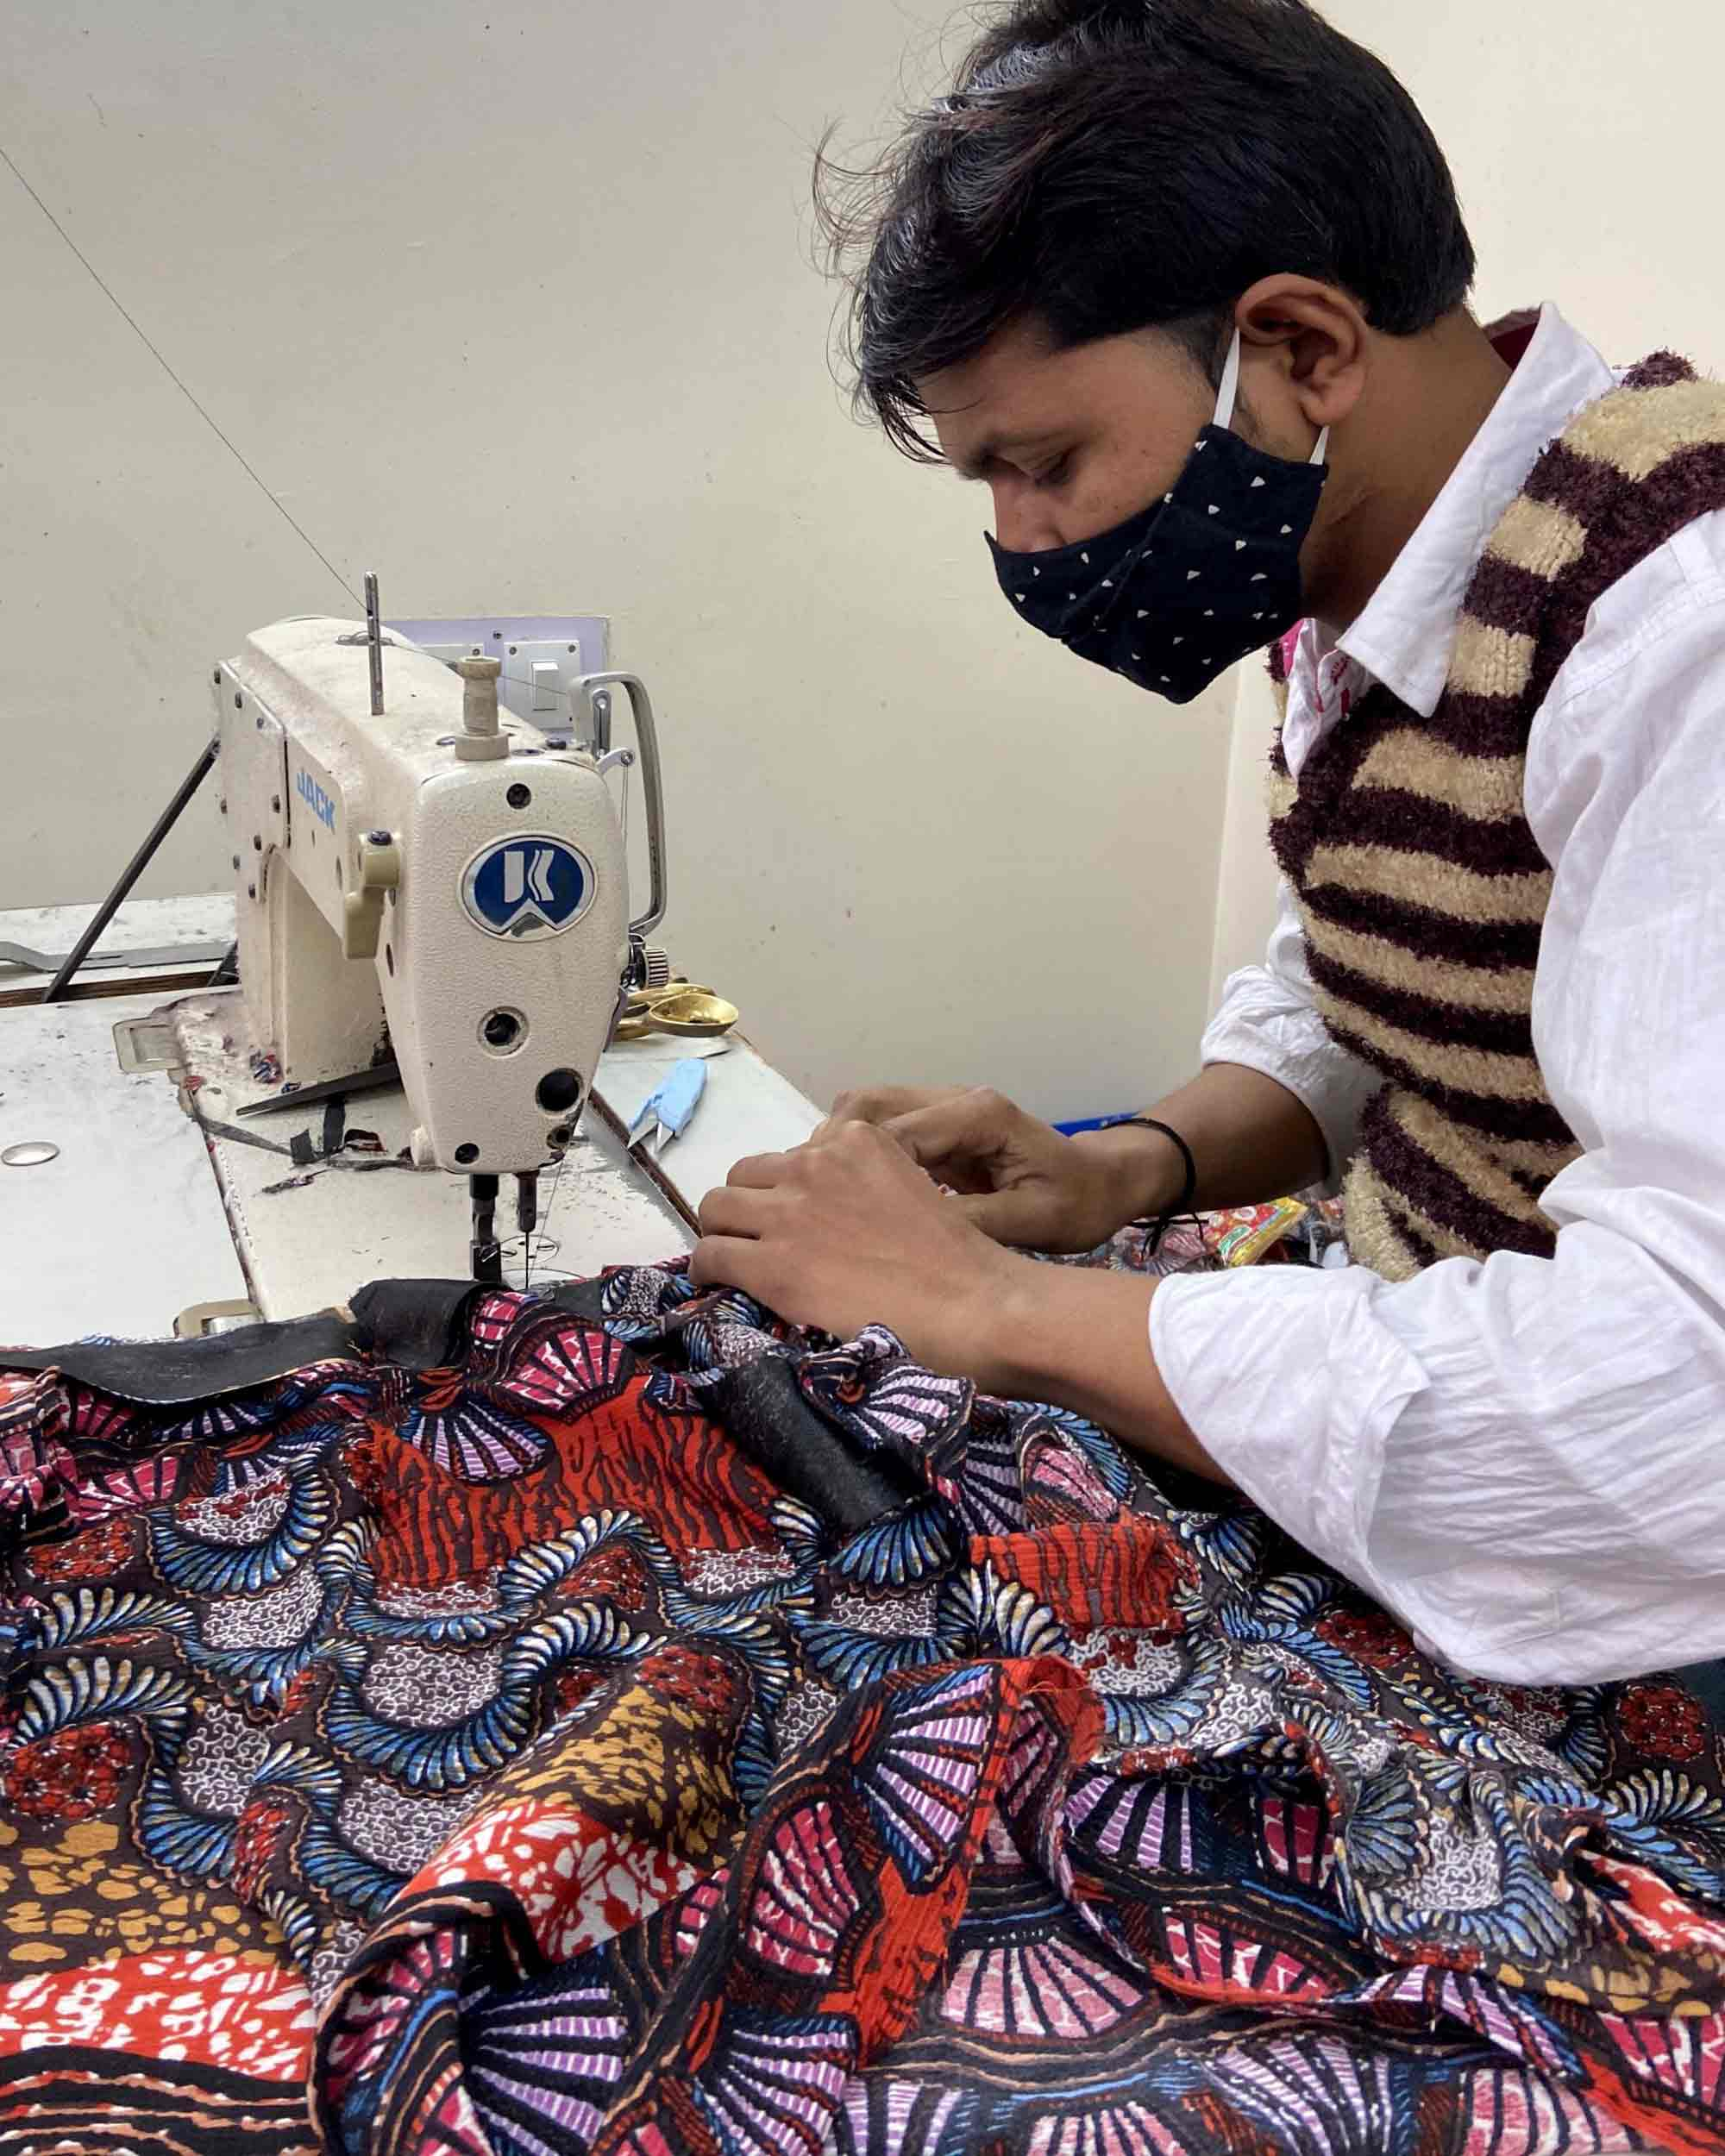 An artisan carefully sowing a dress using whimsical fabric